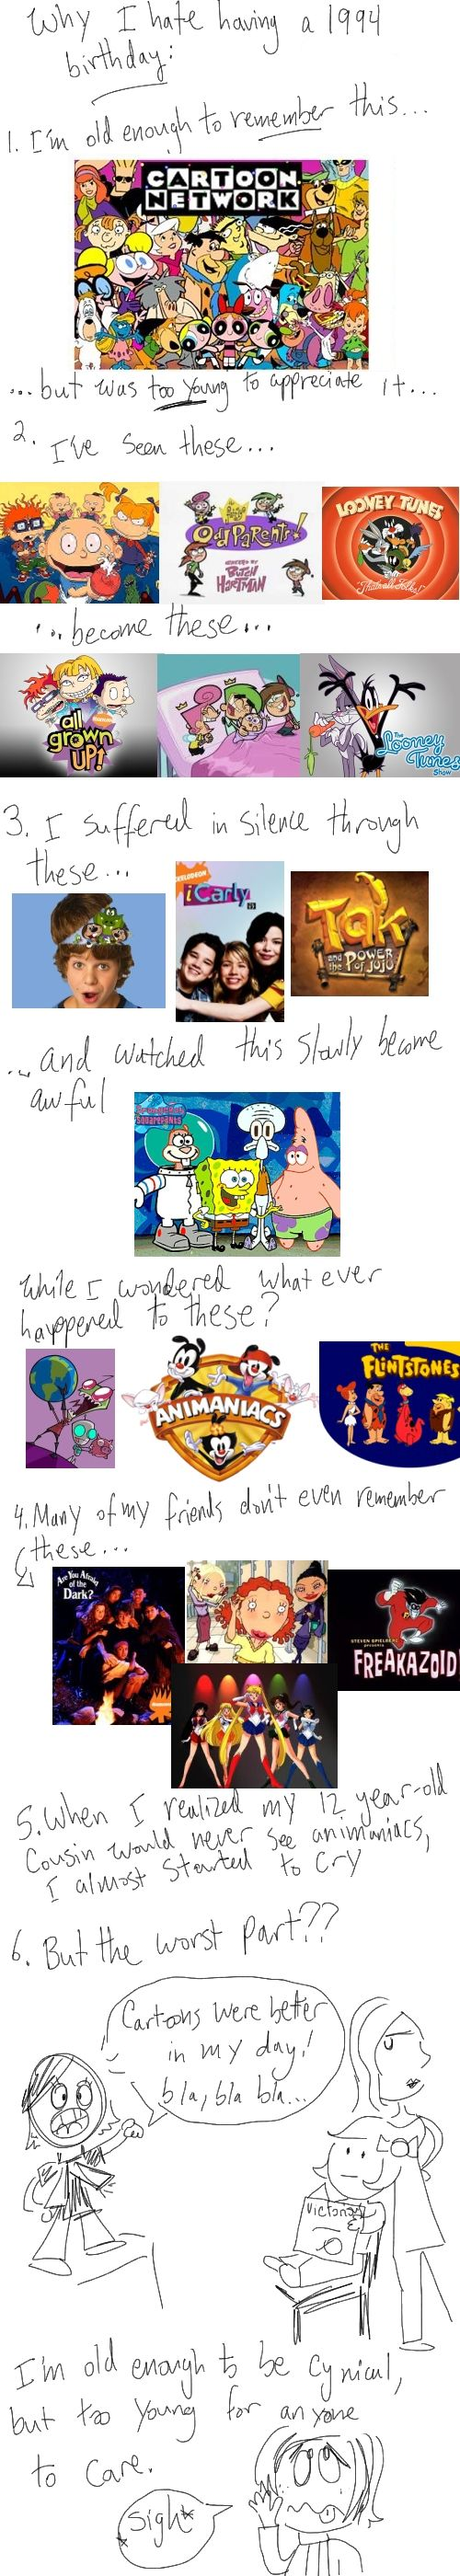 Best S Cartoons NonDisney NonNickelodeon Images On - Depressing look happened favourite 90s cartoon characters